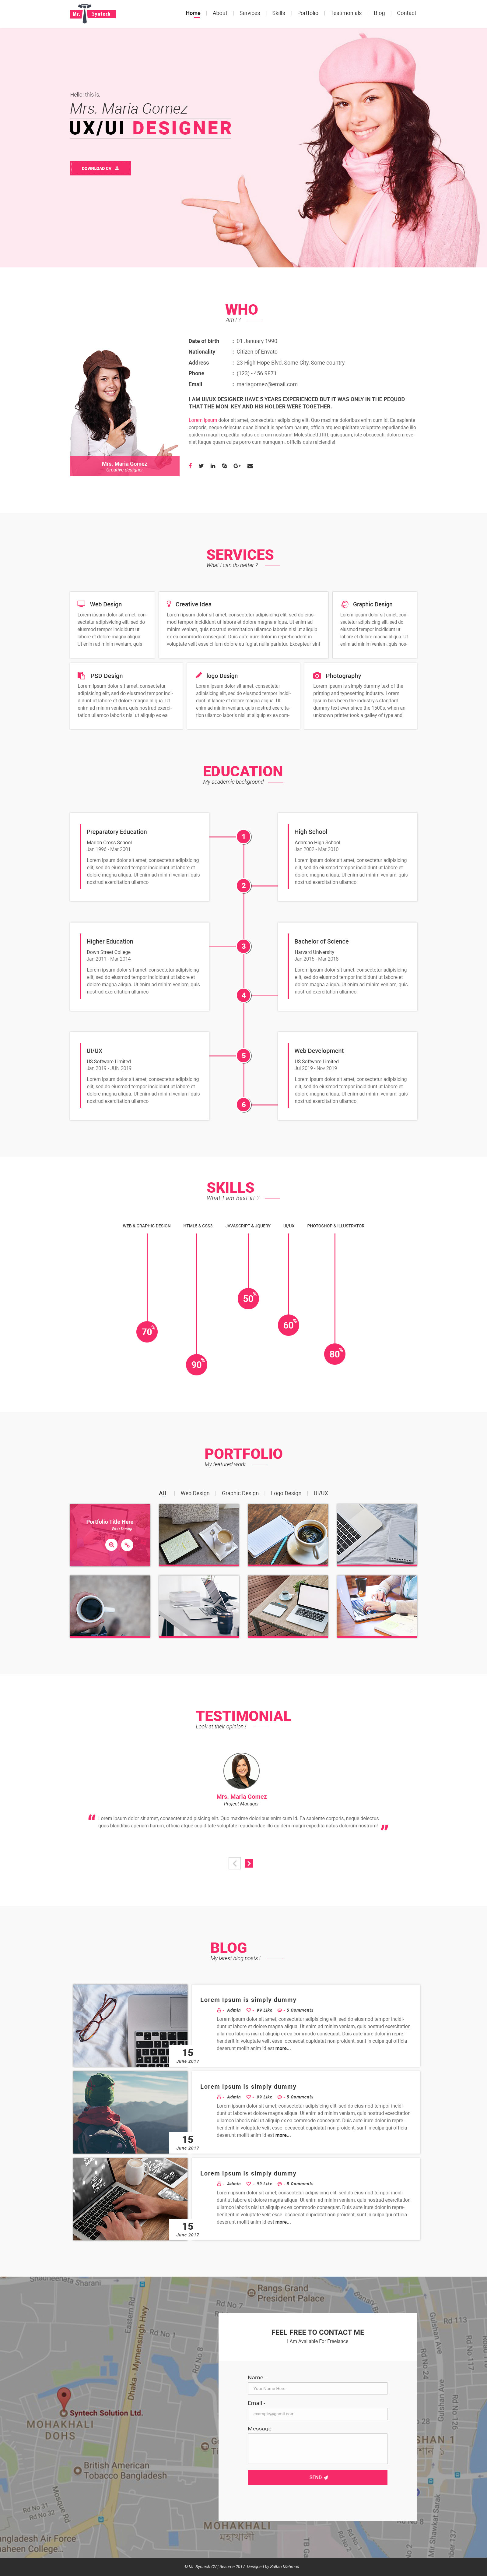 mr syntech  resume psd template by syntechbd